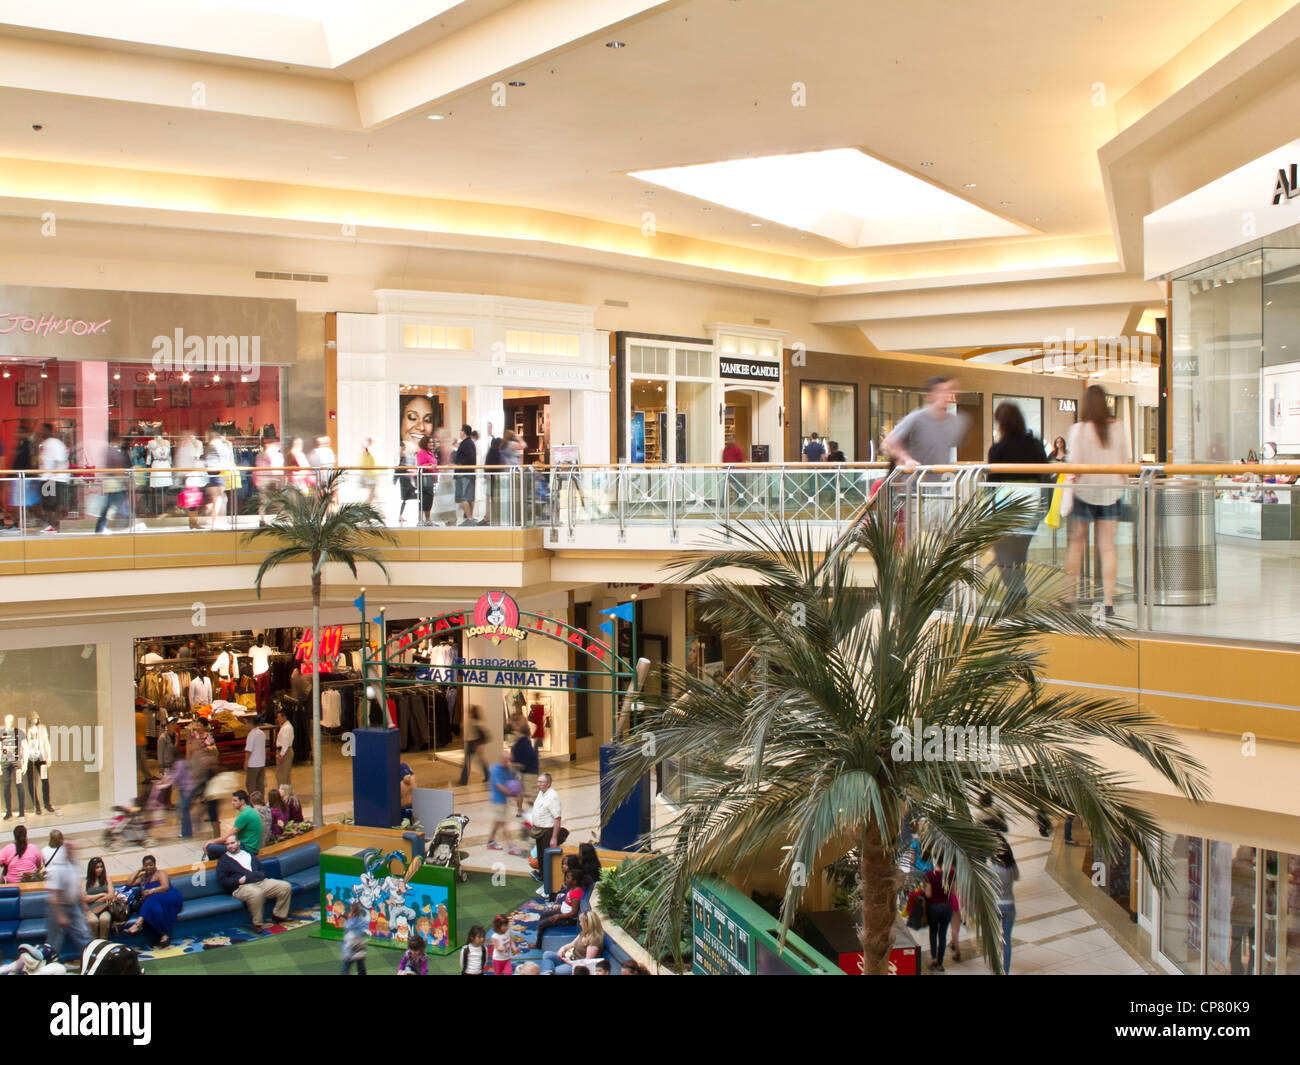 c2f7a37a84cae Tampa Bay Shopping Mall Stock Photos   Tampa Bay Shopping Mall Stock ...